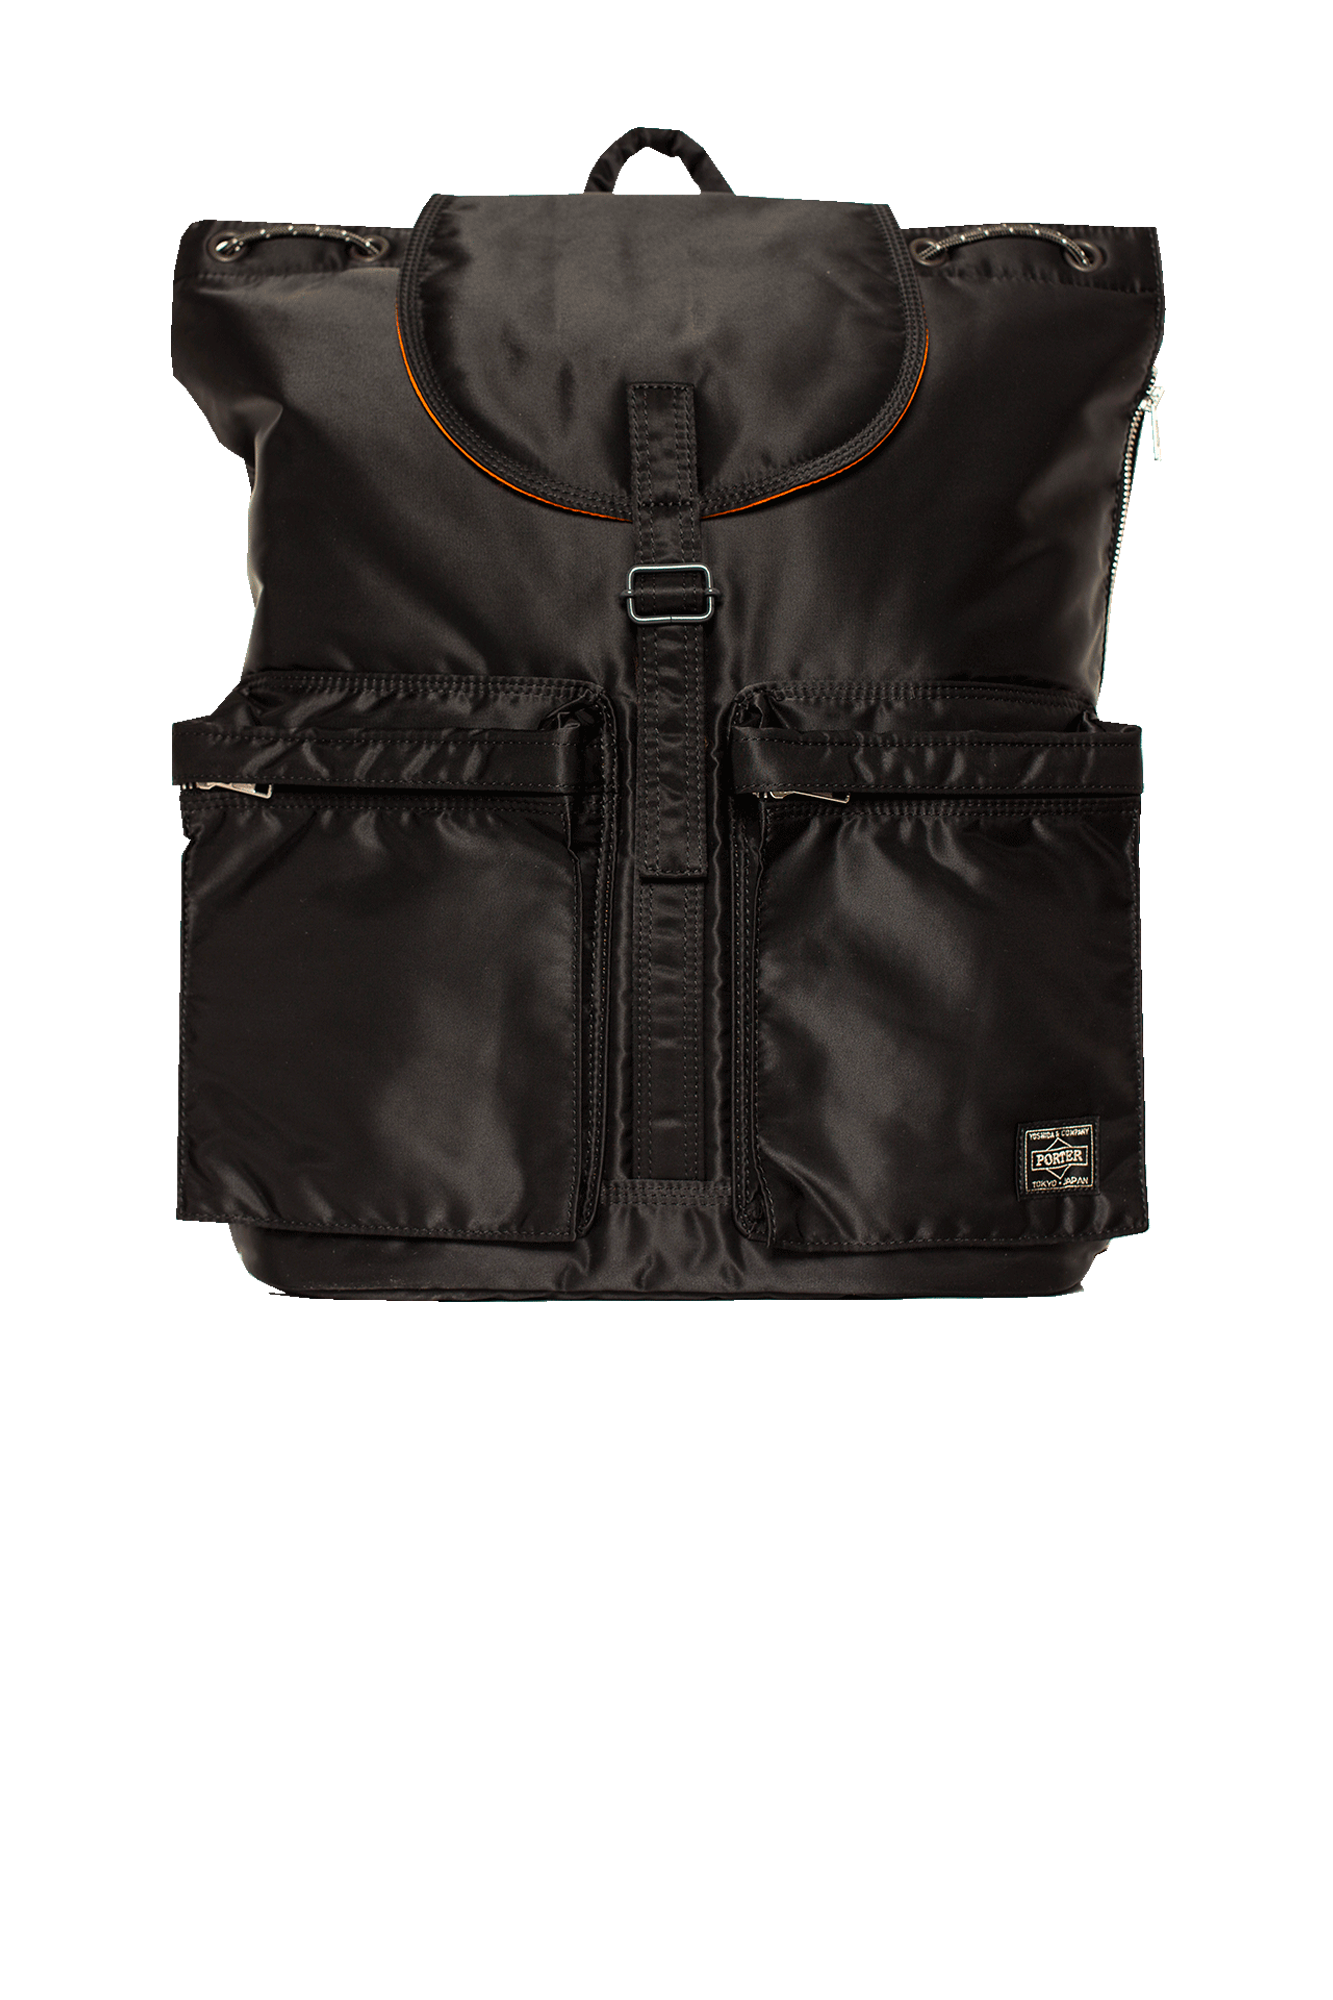 Porter-Yoshida & Co Backpacks Tanker Rucksack Black 62209312#000#C0010#OS - One Block Down